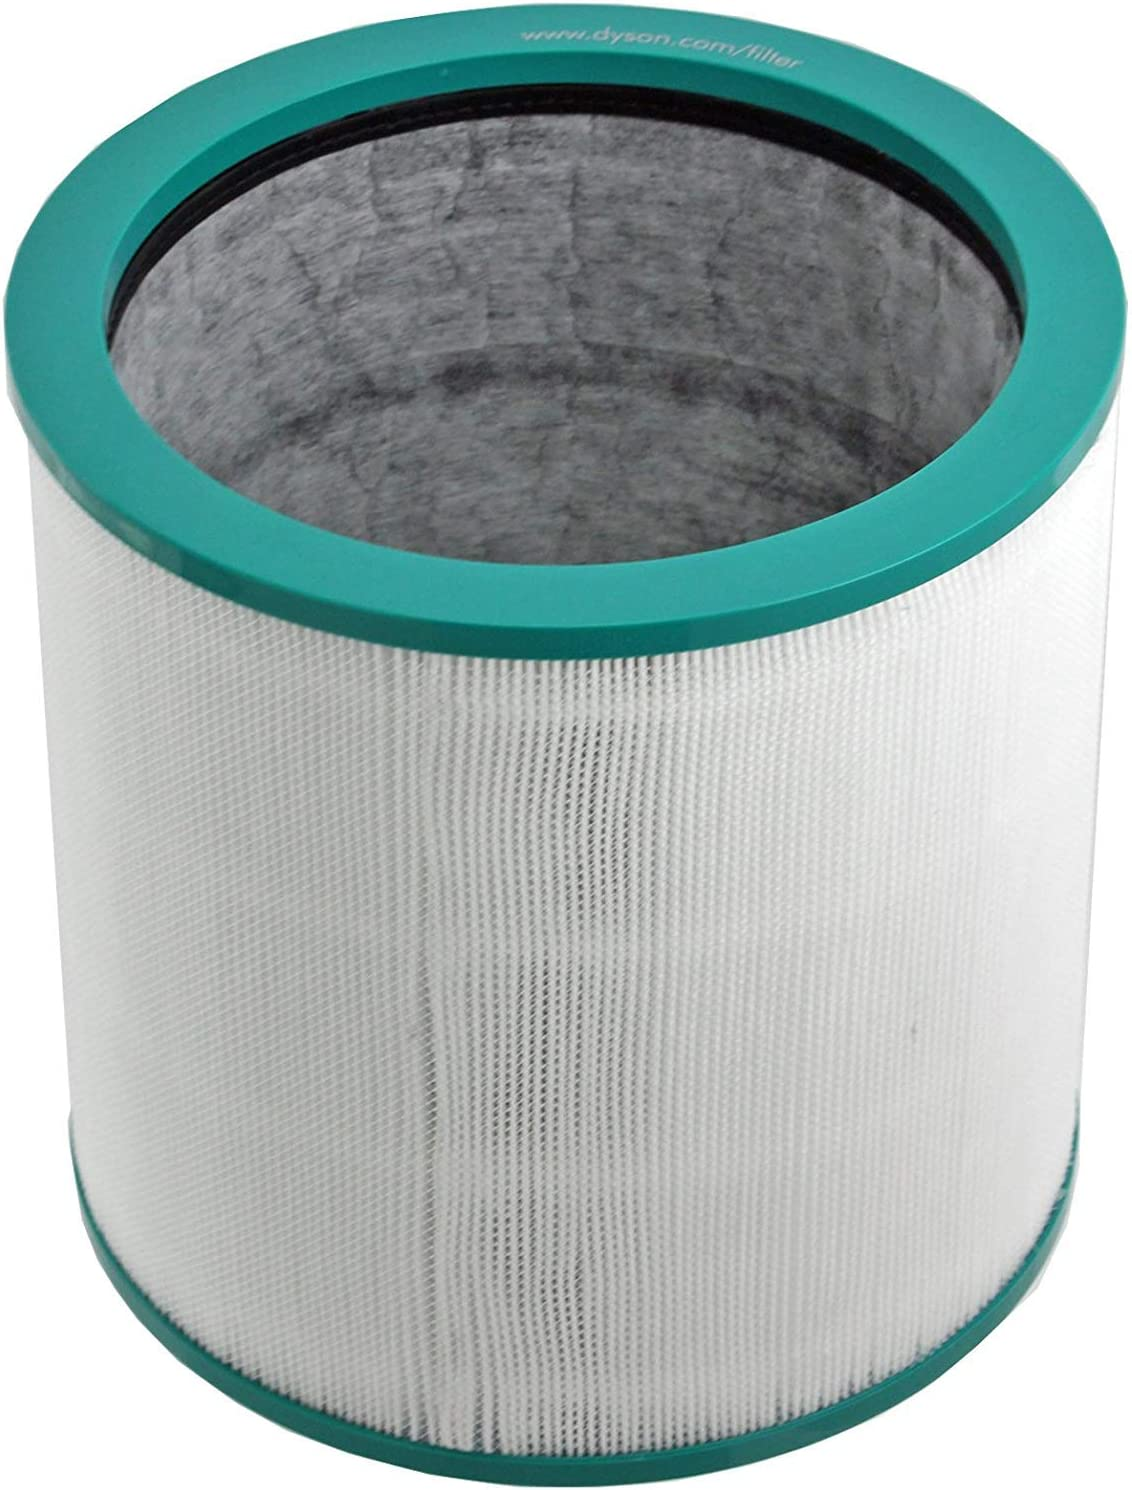 Dyson Replacement Filter for Dyson Pure Cool Link Tower Purifiers